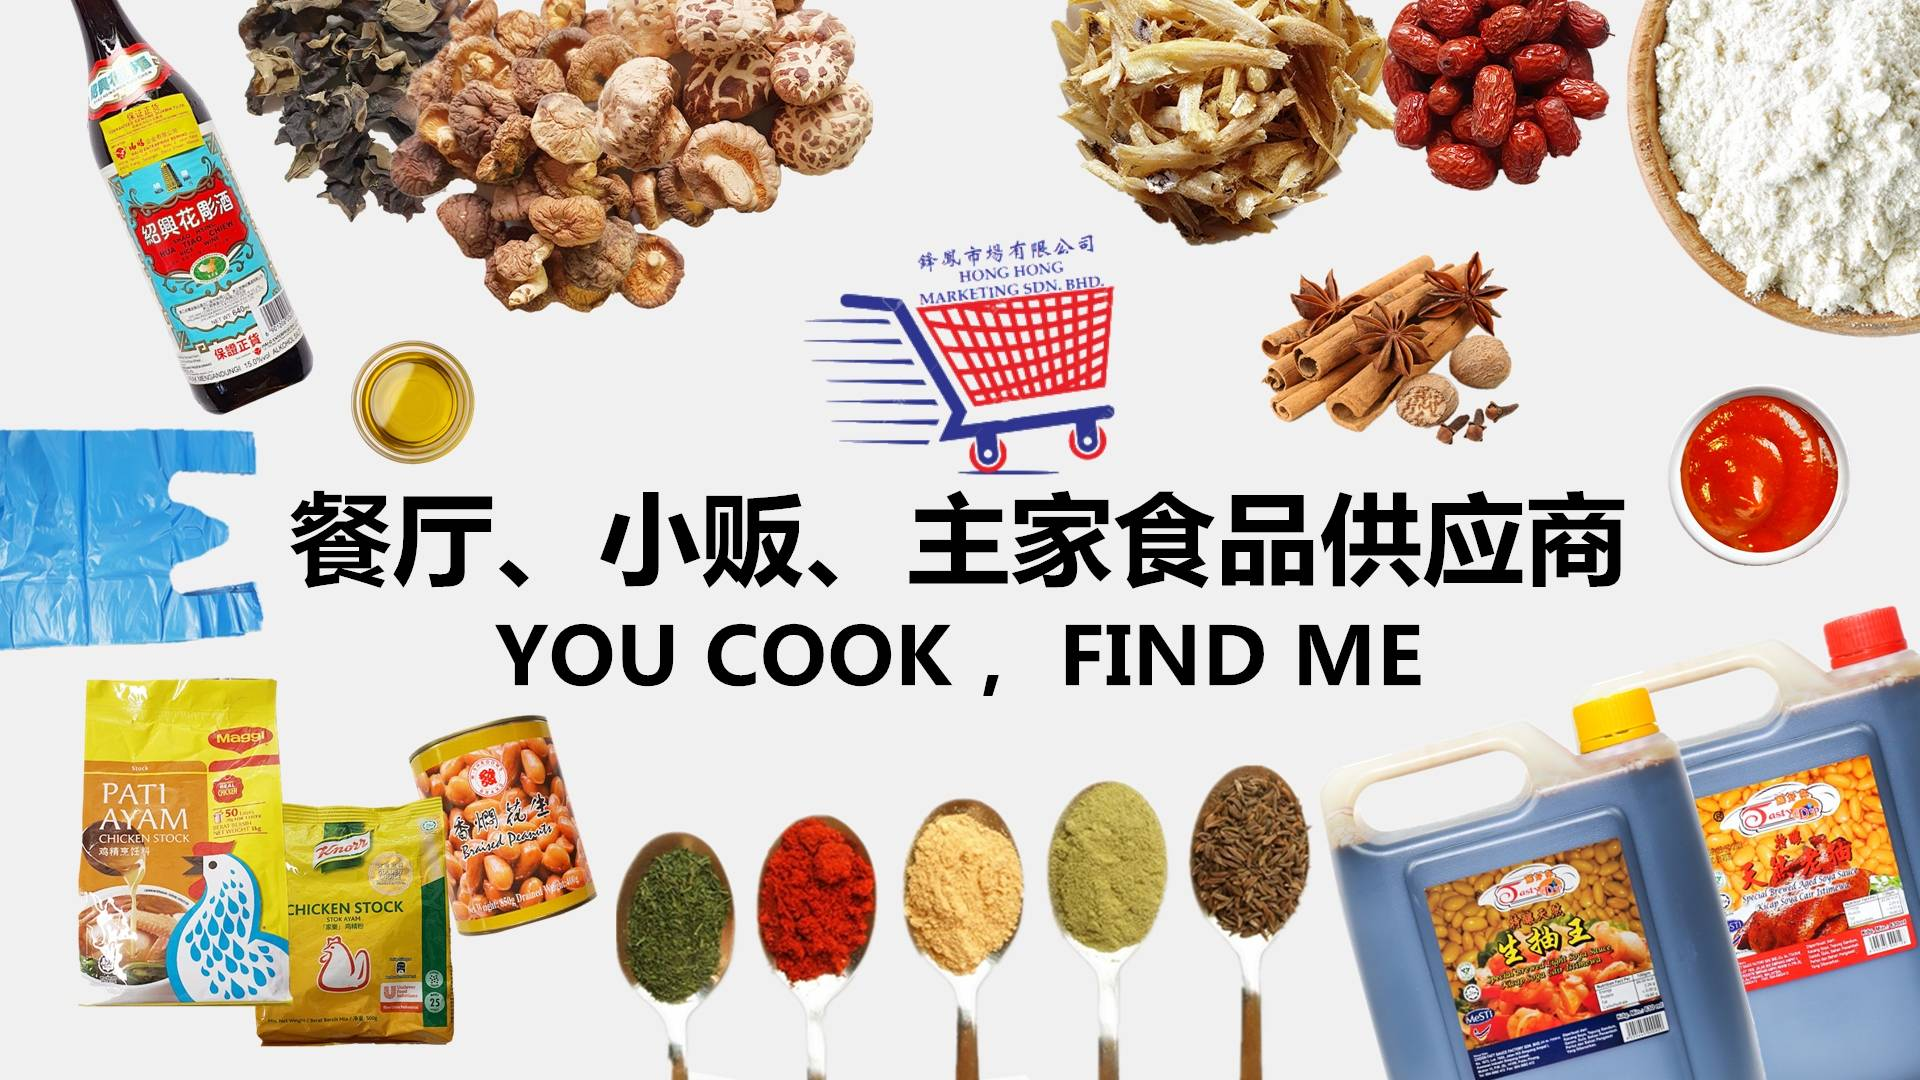 YOU COOK FIND ME